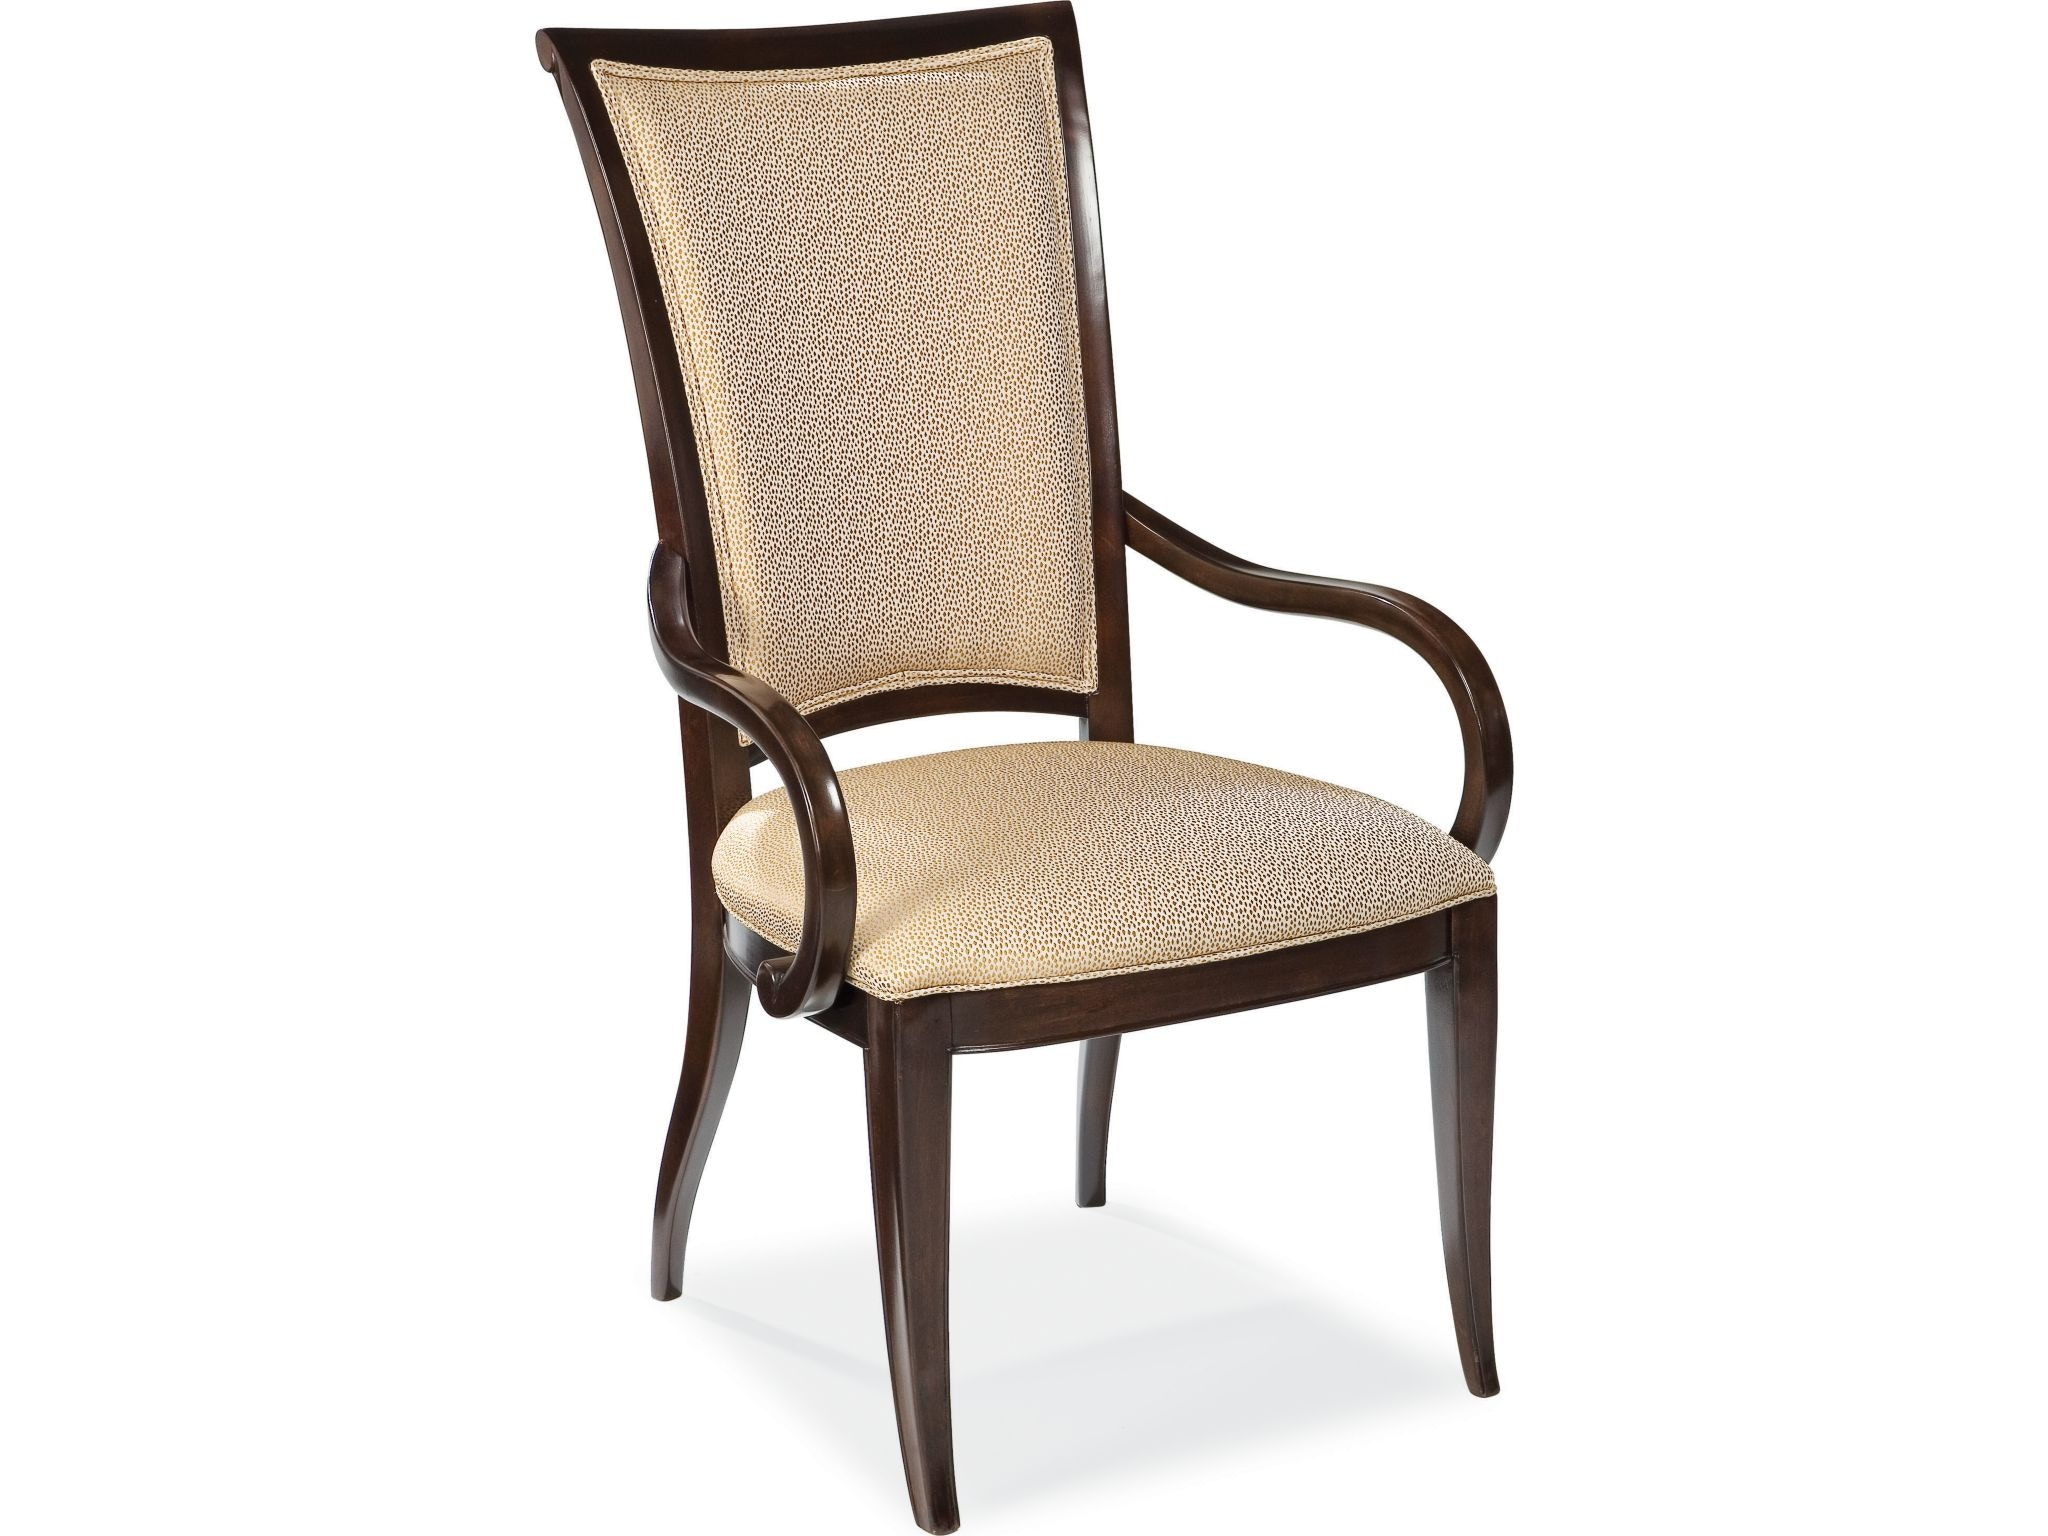 Thomasville Dining Room Upholstered Arm Chair 45521 872  : 45521 872 from www.mccreerys.com size 1024 x 768 jpeg 53kB